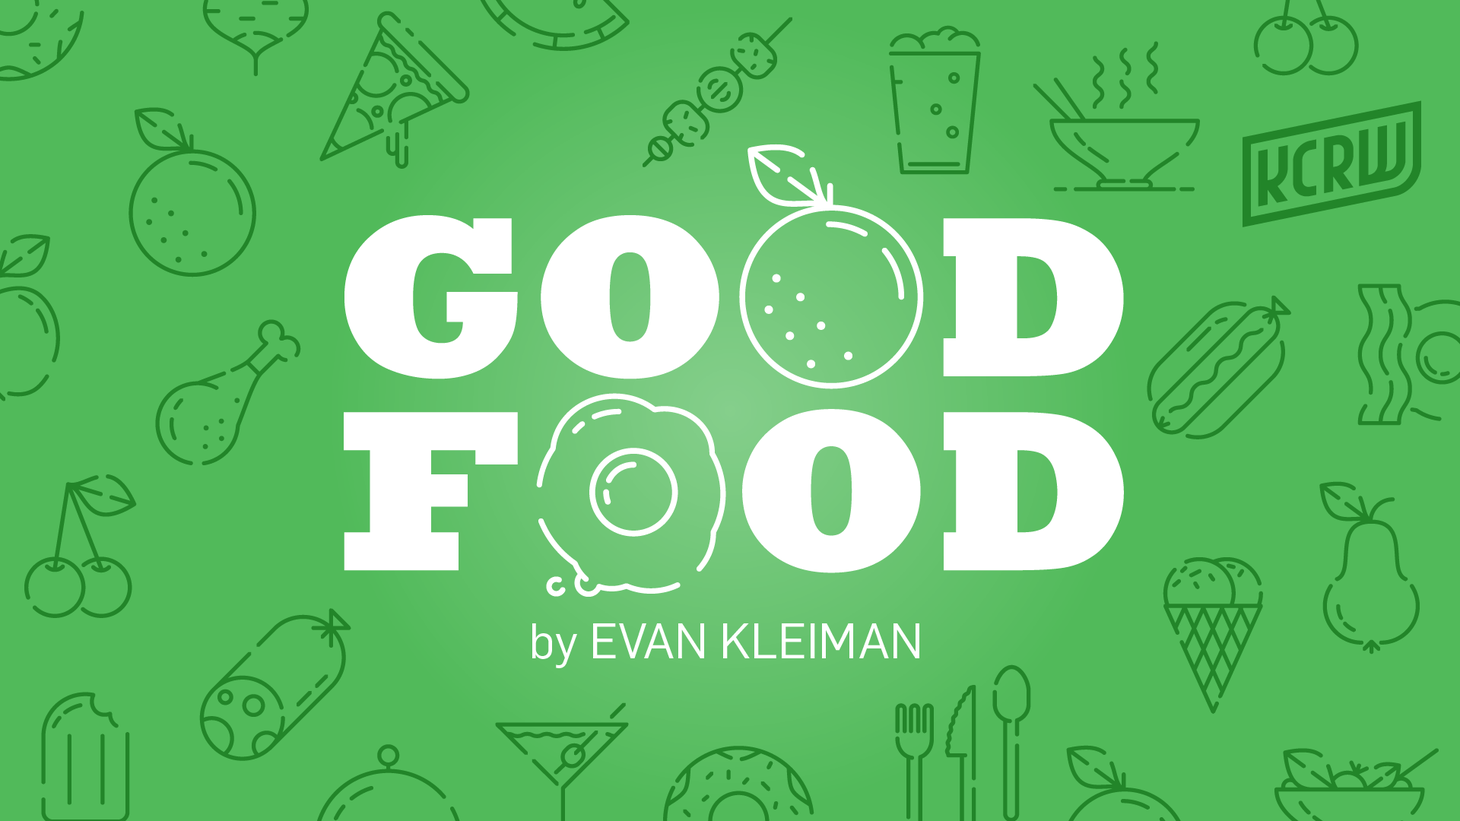 Join host Evan Kleiman as she delves into the art of chocolate.  We'll hear about the celebrated East Coast Hay Day Country Market and hear from a food scientist about high-altitude cooking.  We'll also talk to the author of a book about creating health and harmony in your kitchen.